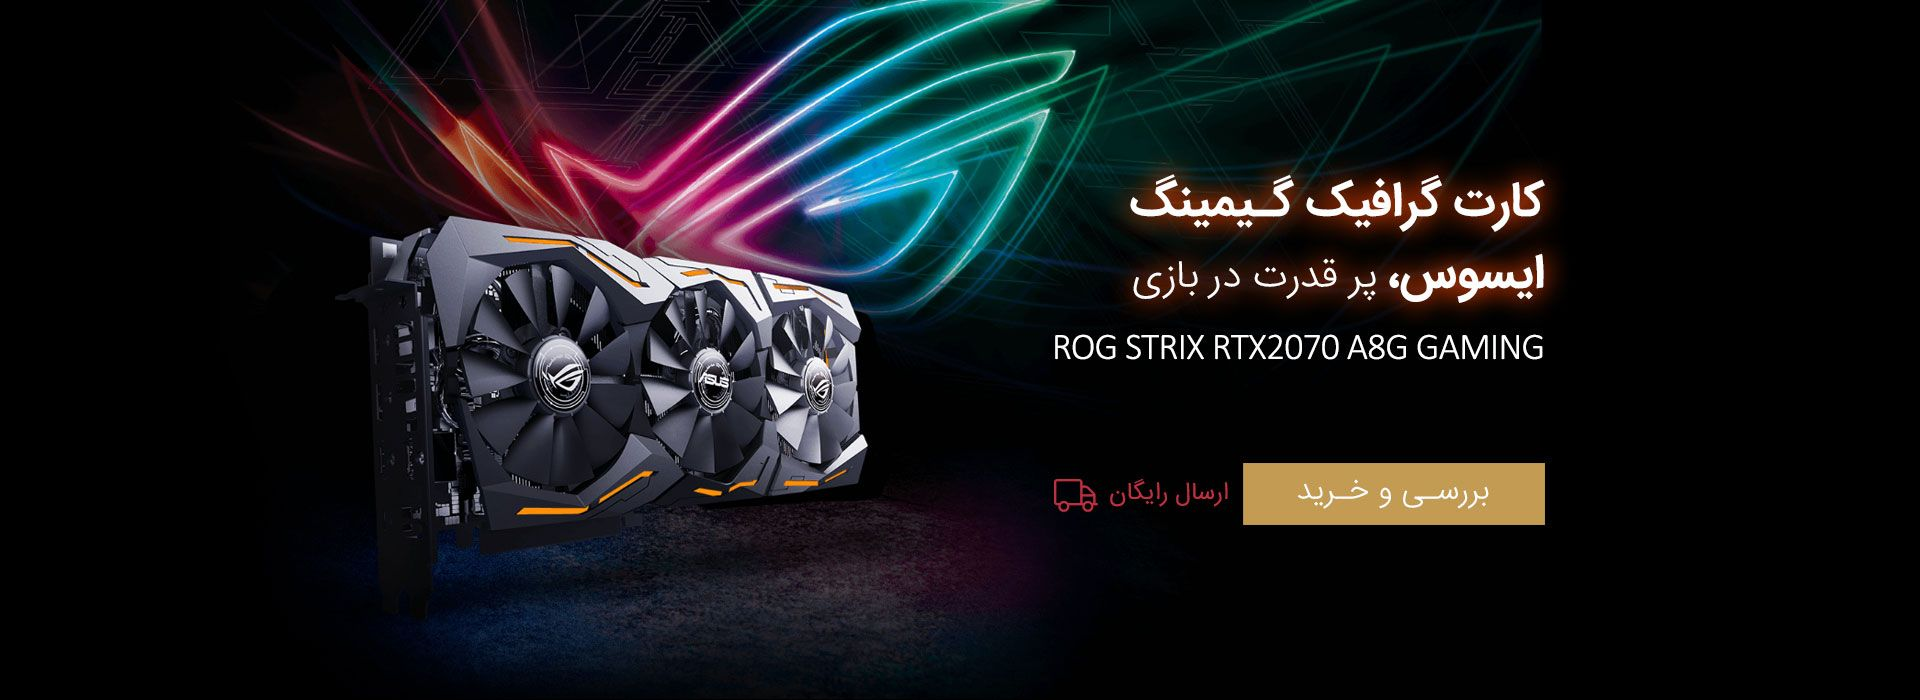 Asus GAMING ROG STRIX-RTX2070-A8G